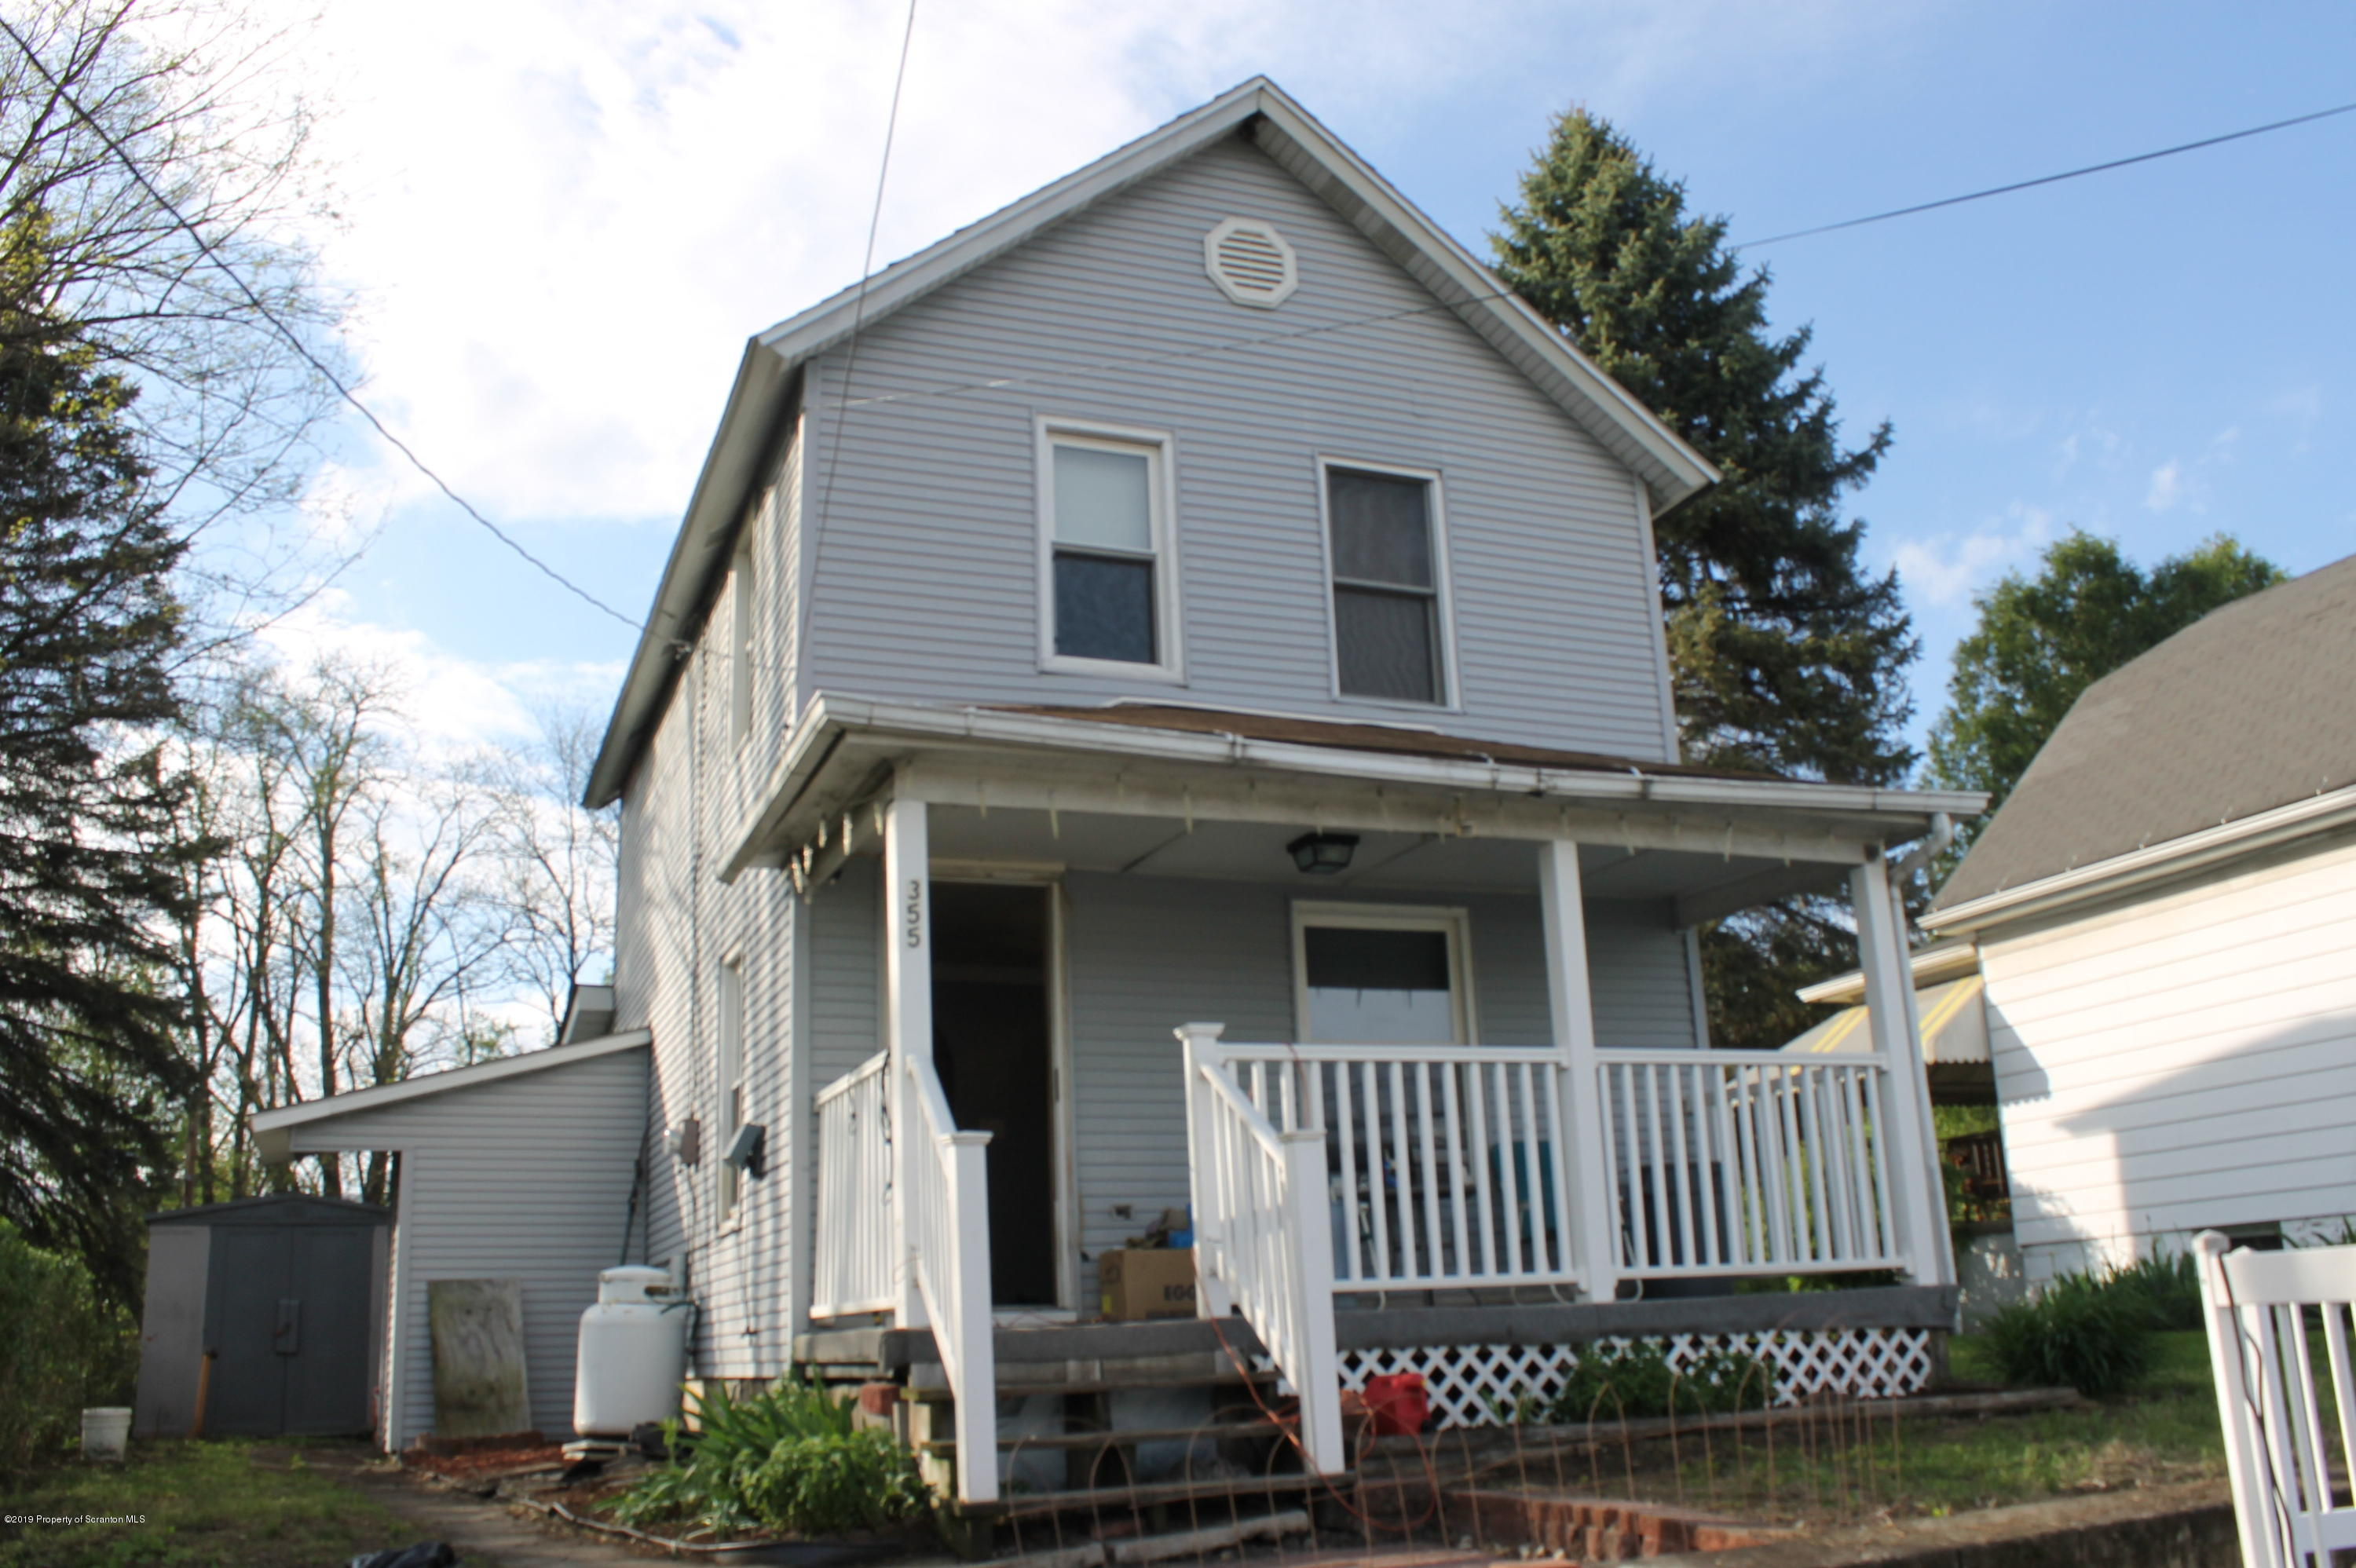 355 Main St, Taylor, Pennsylvania 18517, 2 Bedrooms Bedrooms, 6 Rooms Rooms,1 BathroomBathrooms,Single Family,For Sale,Main,19-2120